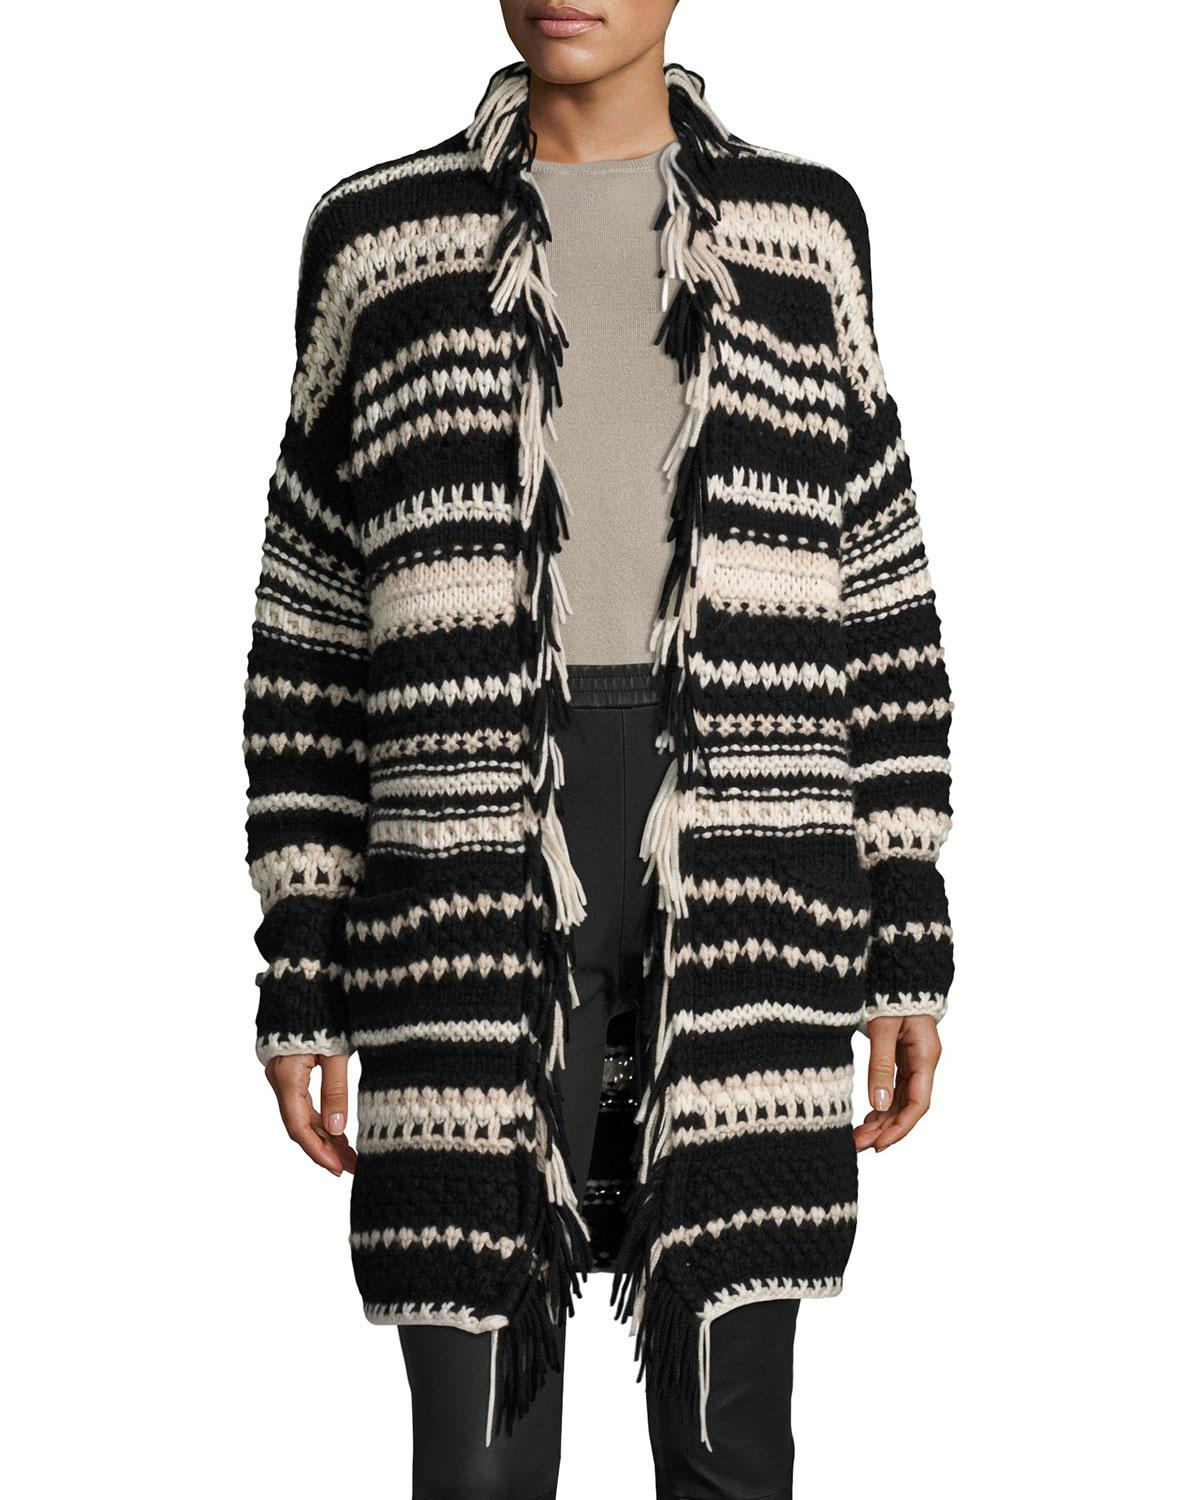 Iris von arnim Hand-knit Long Open Cardigan in Black | Lyst